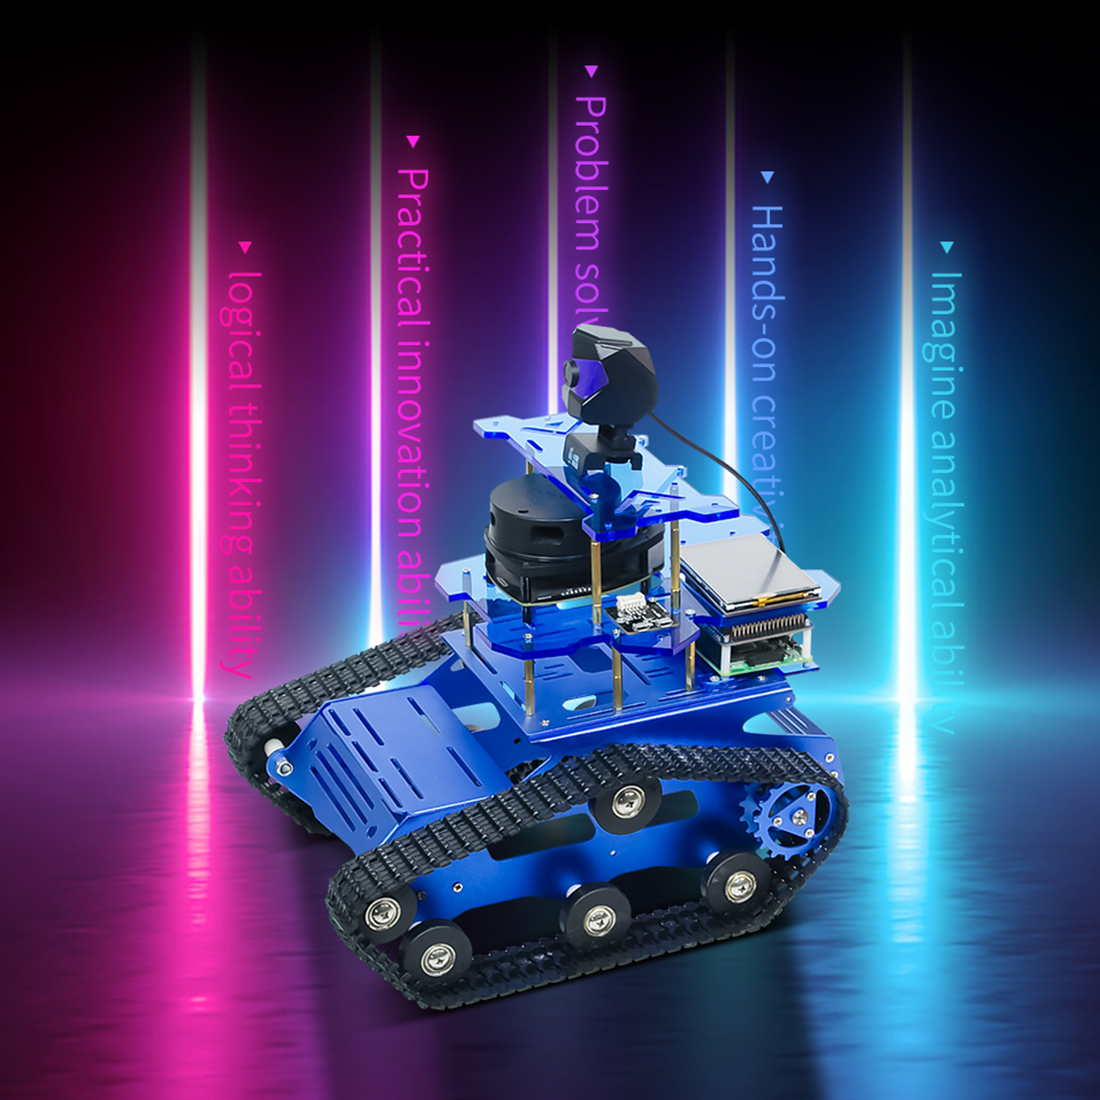 DIY Smart Programmable Robot Tank Chassis Car with Laser Radar for Raspberry Pi 4 (2G) For Kids Adults Gift - Black 1